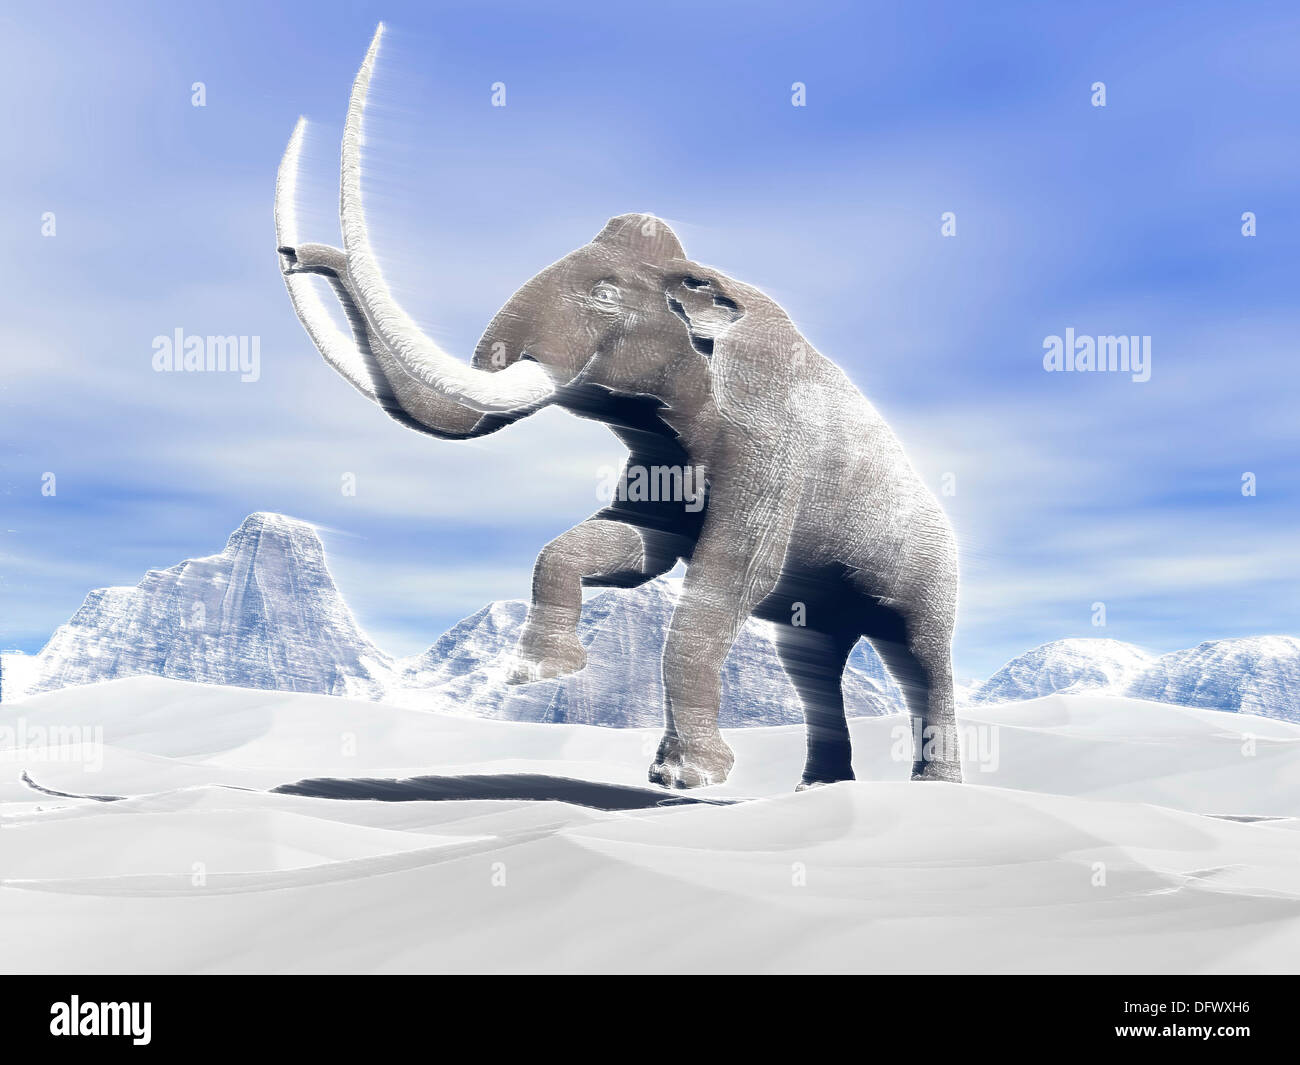 Large mammoth walking slowly on the snowy mountain against the wind. - Stock Image